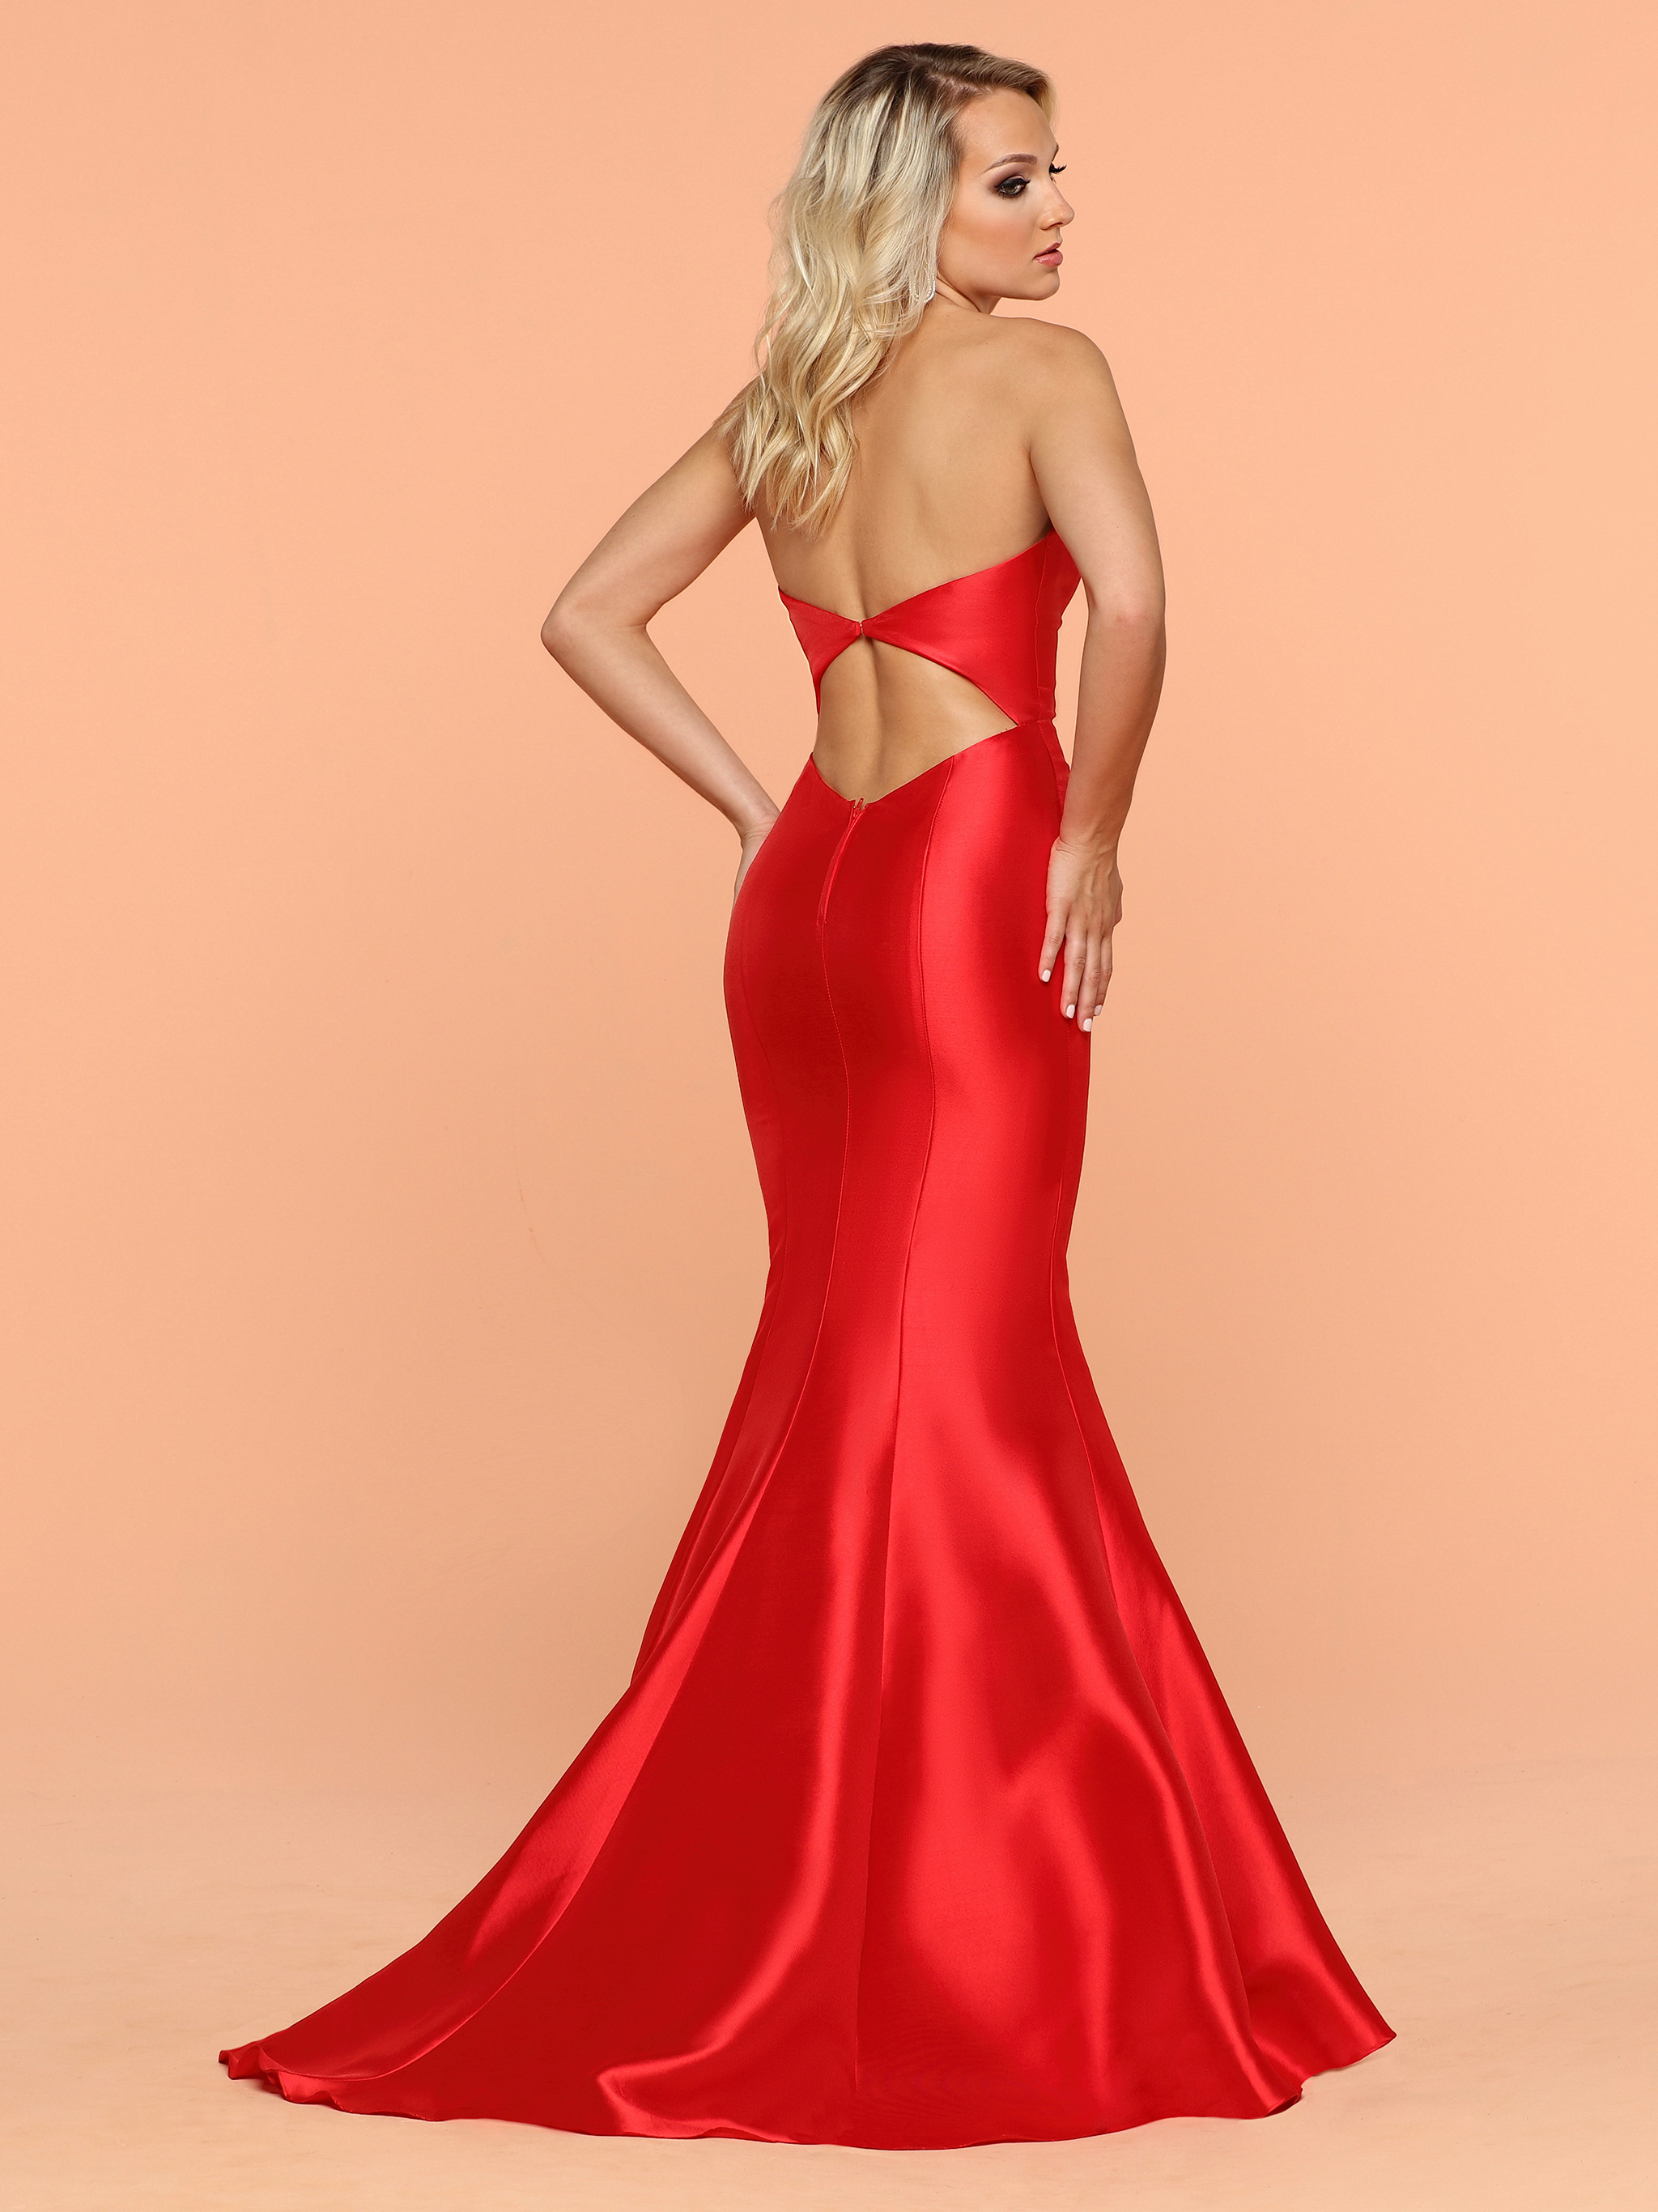 Image showing back view of style #71829